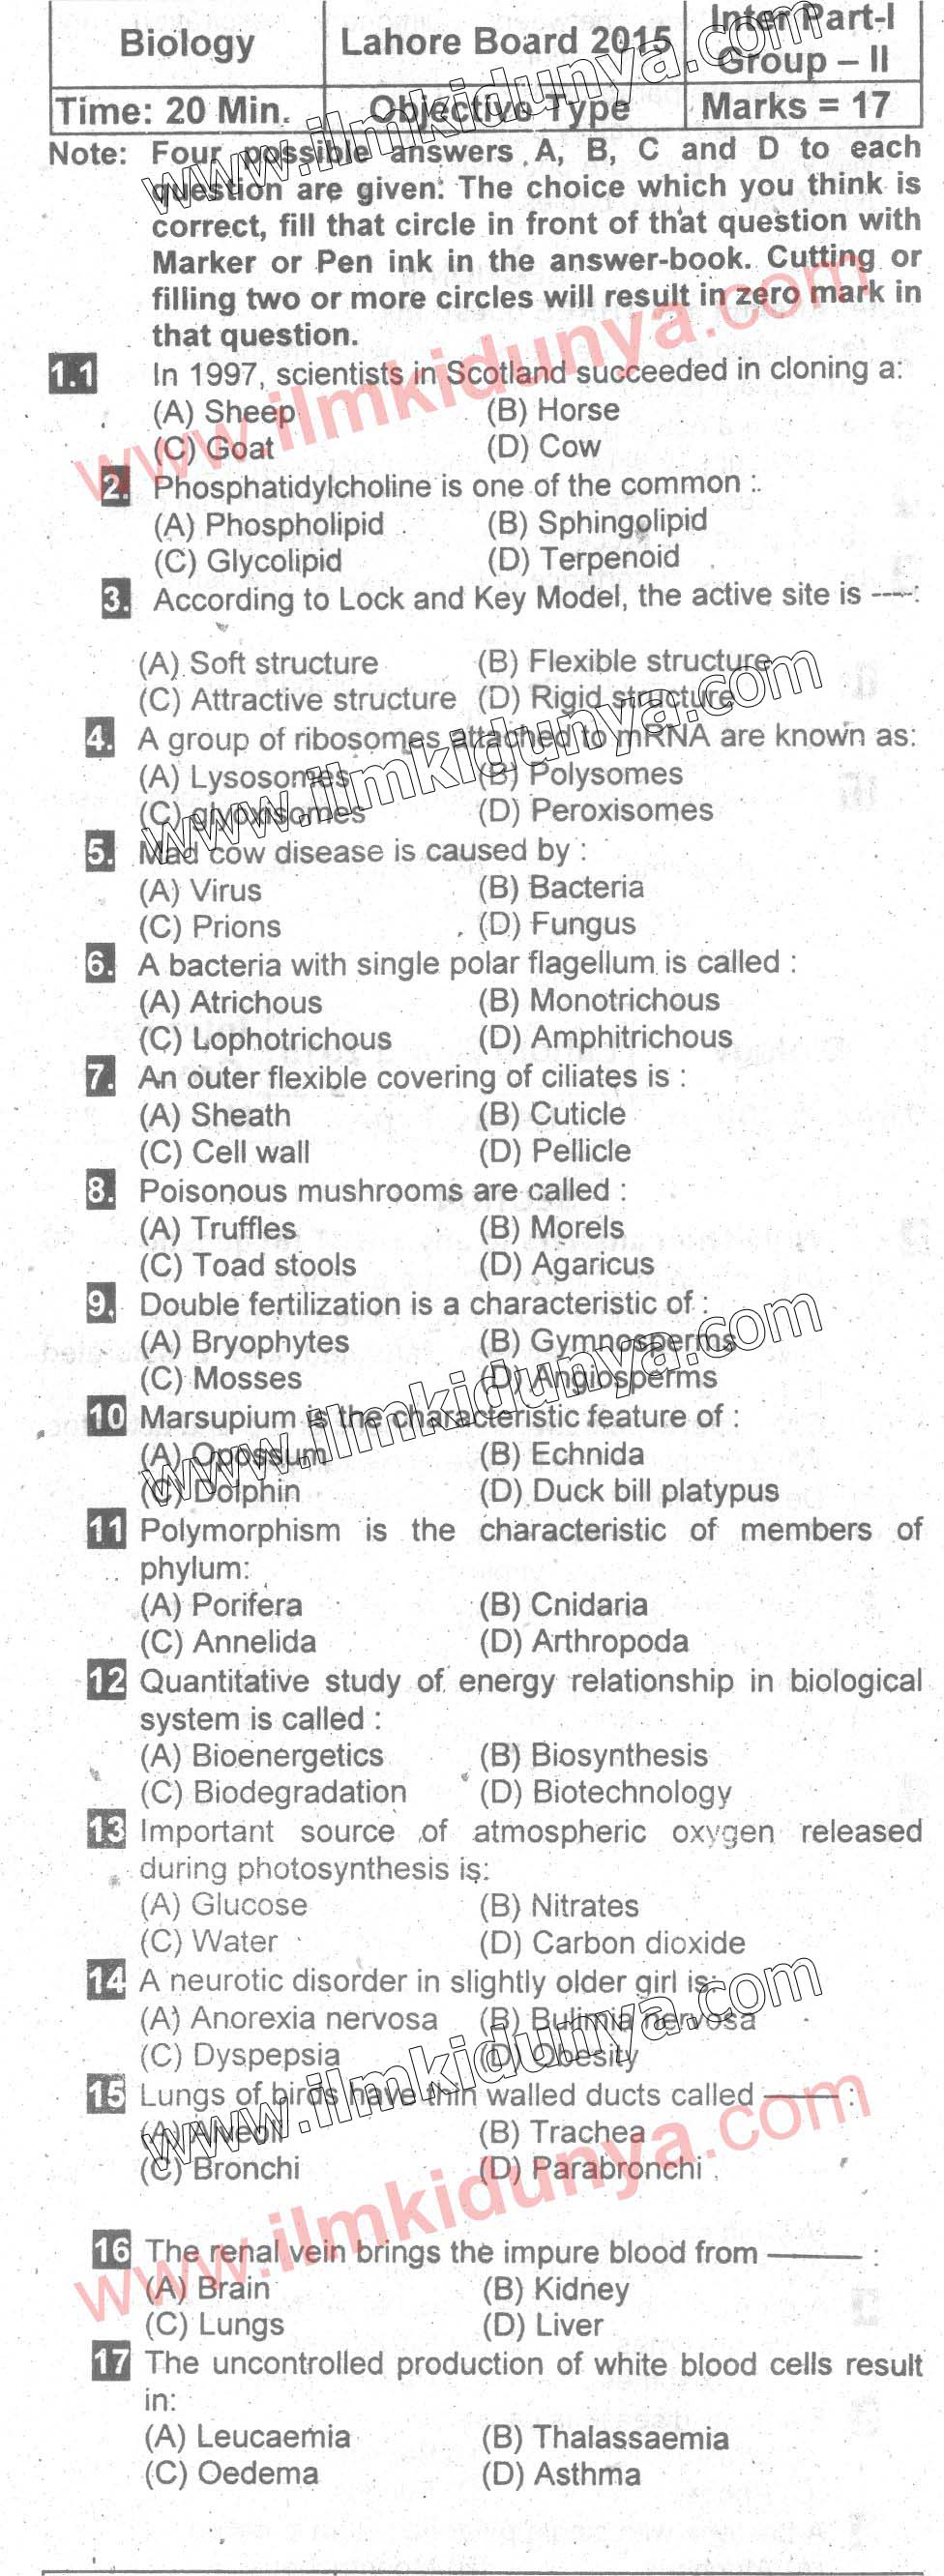 Past Papers Lahore Board 2015 Inter Part 1 Biology